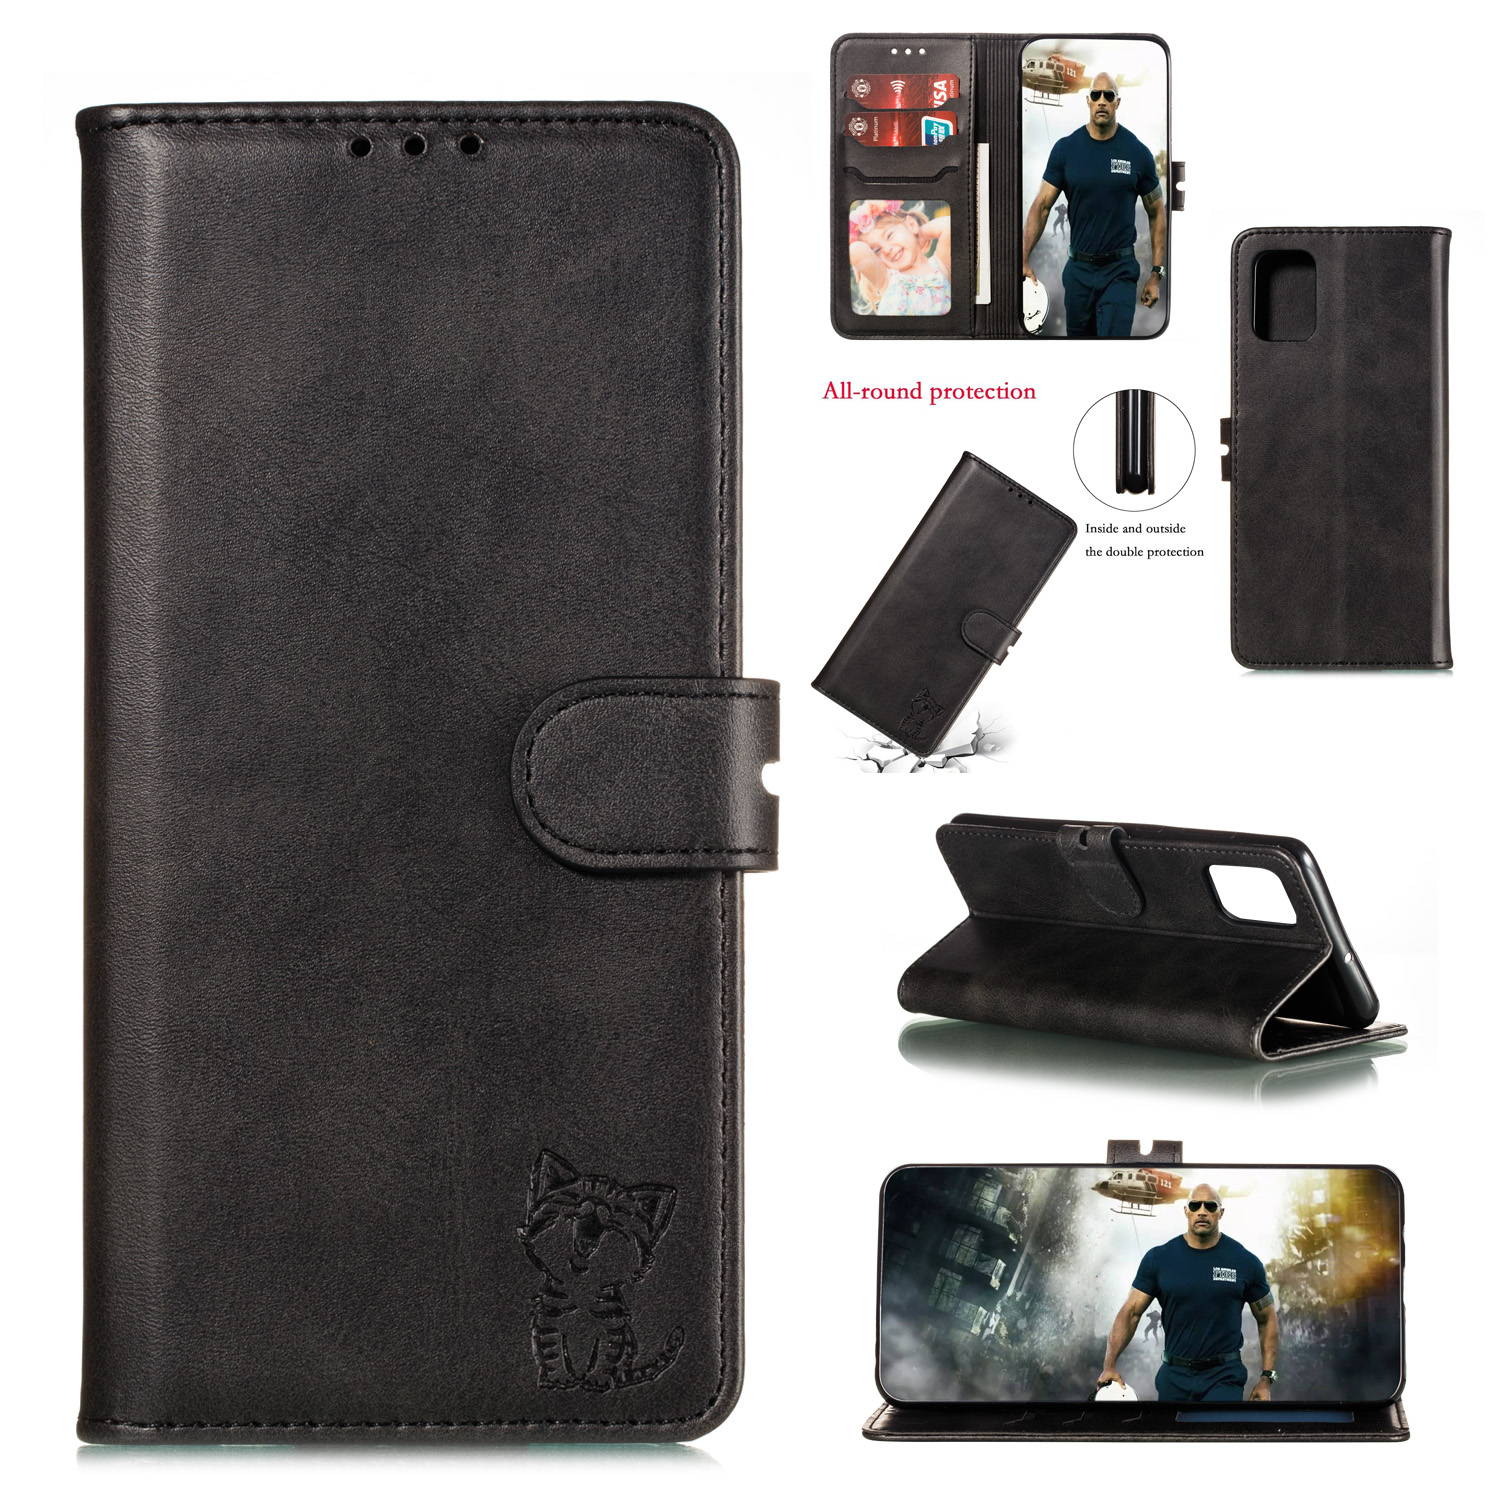 For HUAWEI P40 Pro Mobile Phone Cover PU Leather Front Buckle Smart Shell Anti-fall Phone Case 1 black